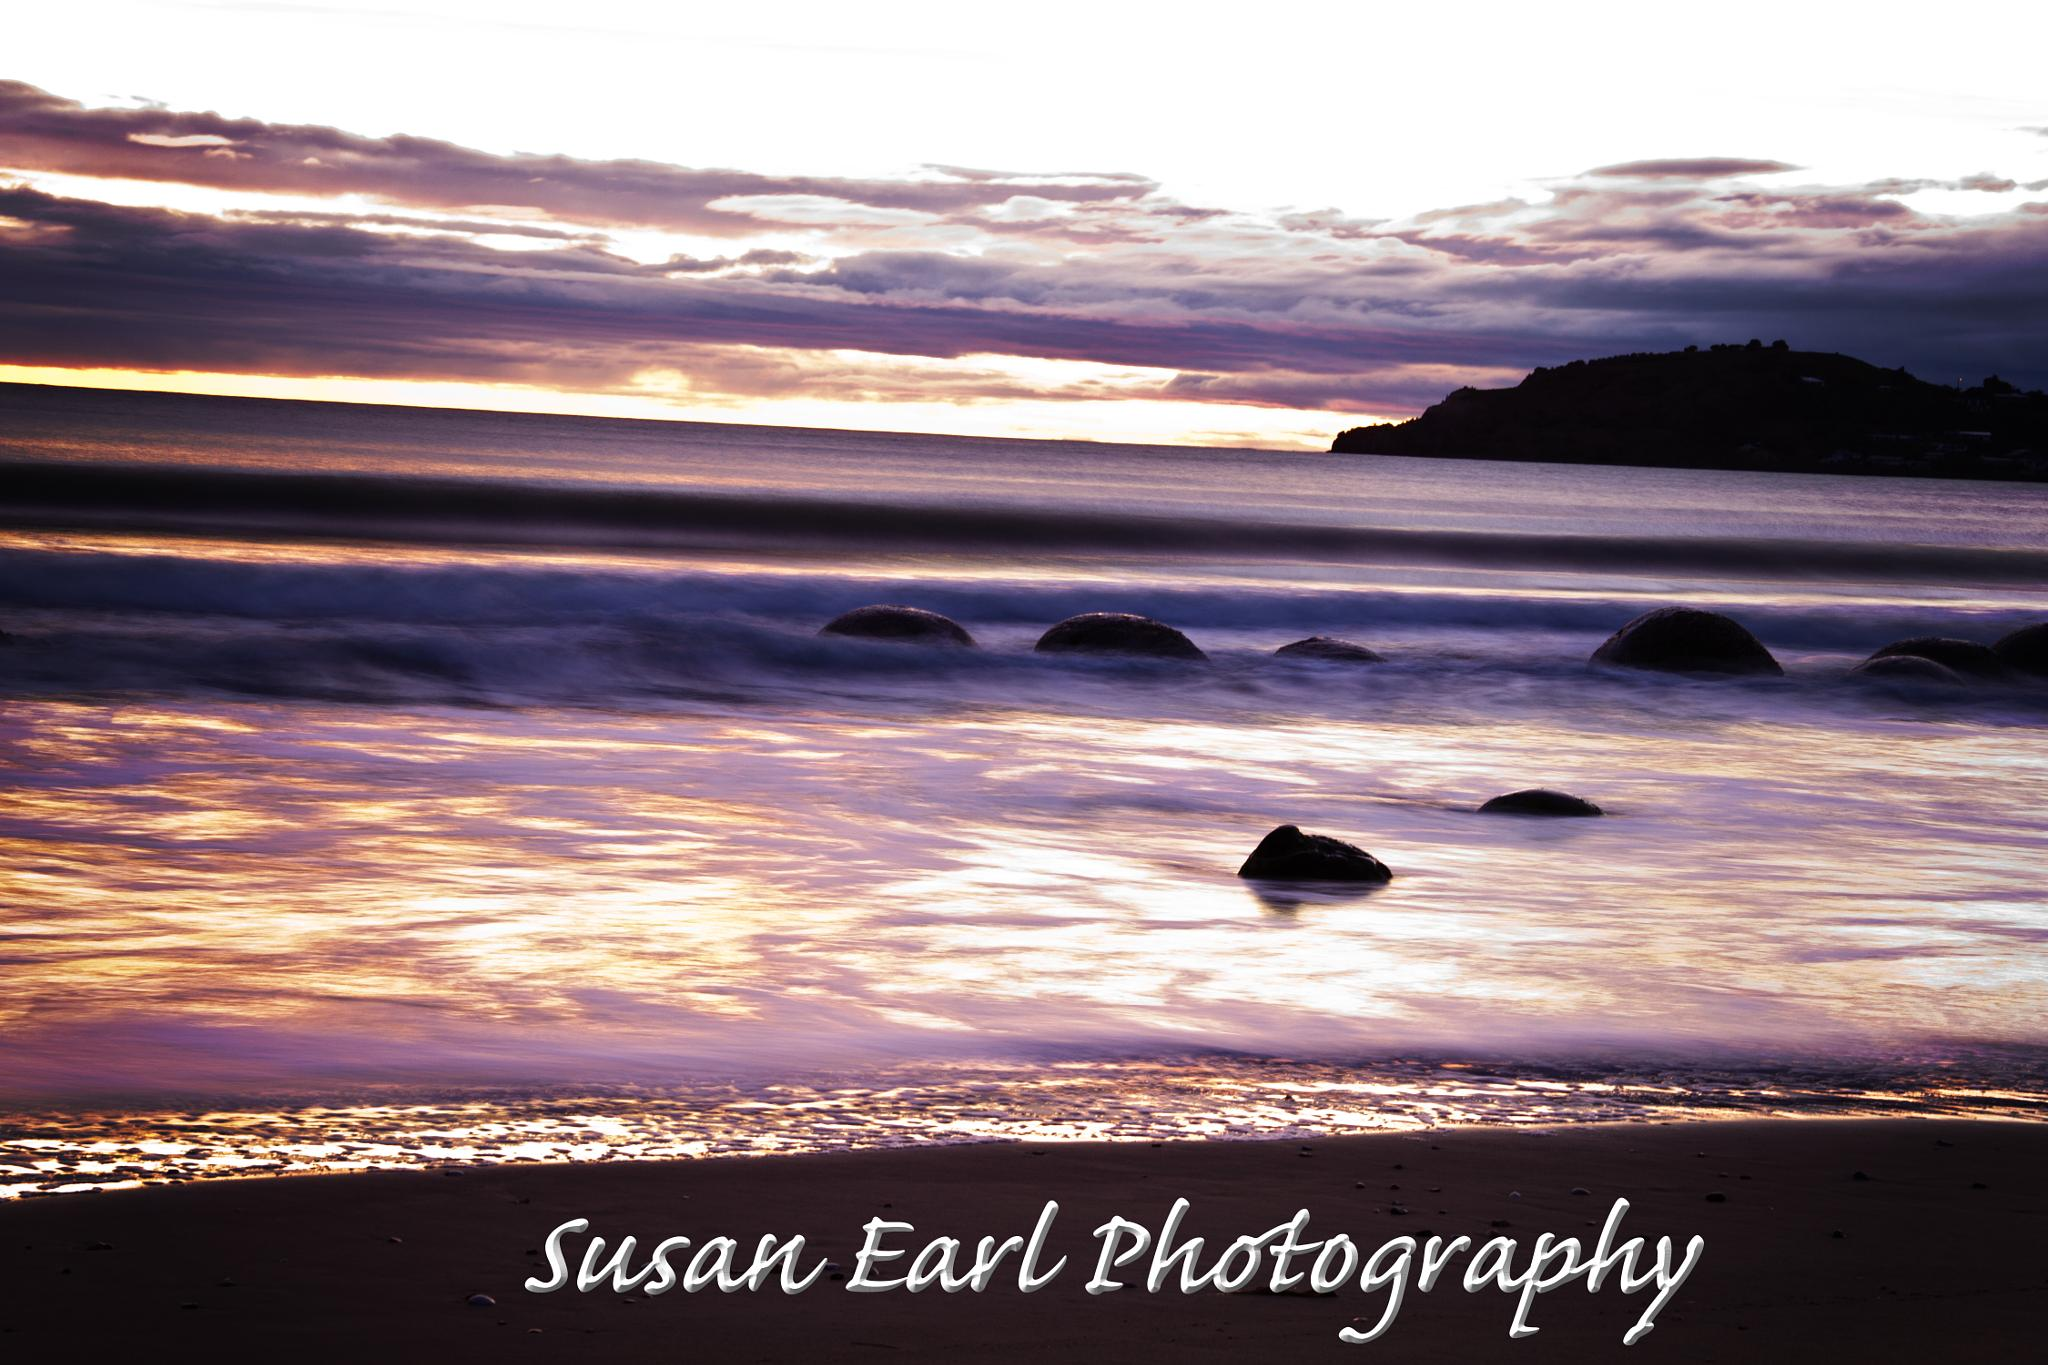 Untitled by Susan Earl